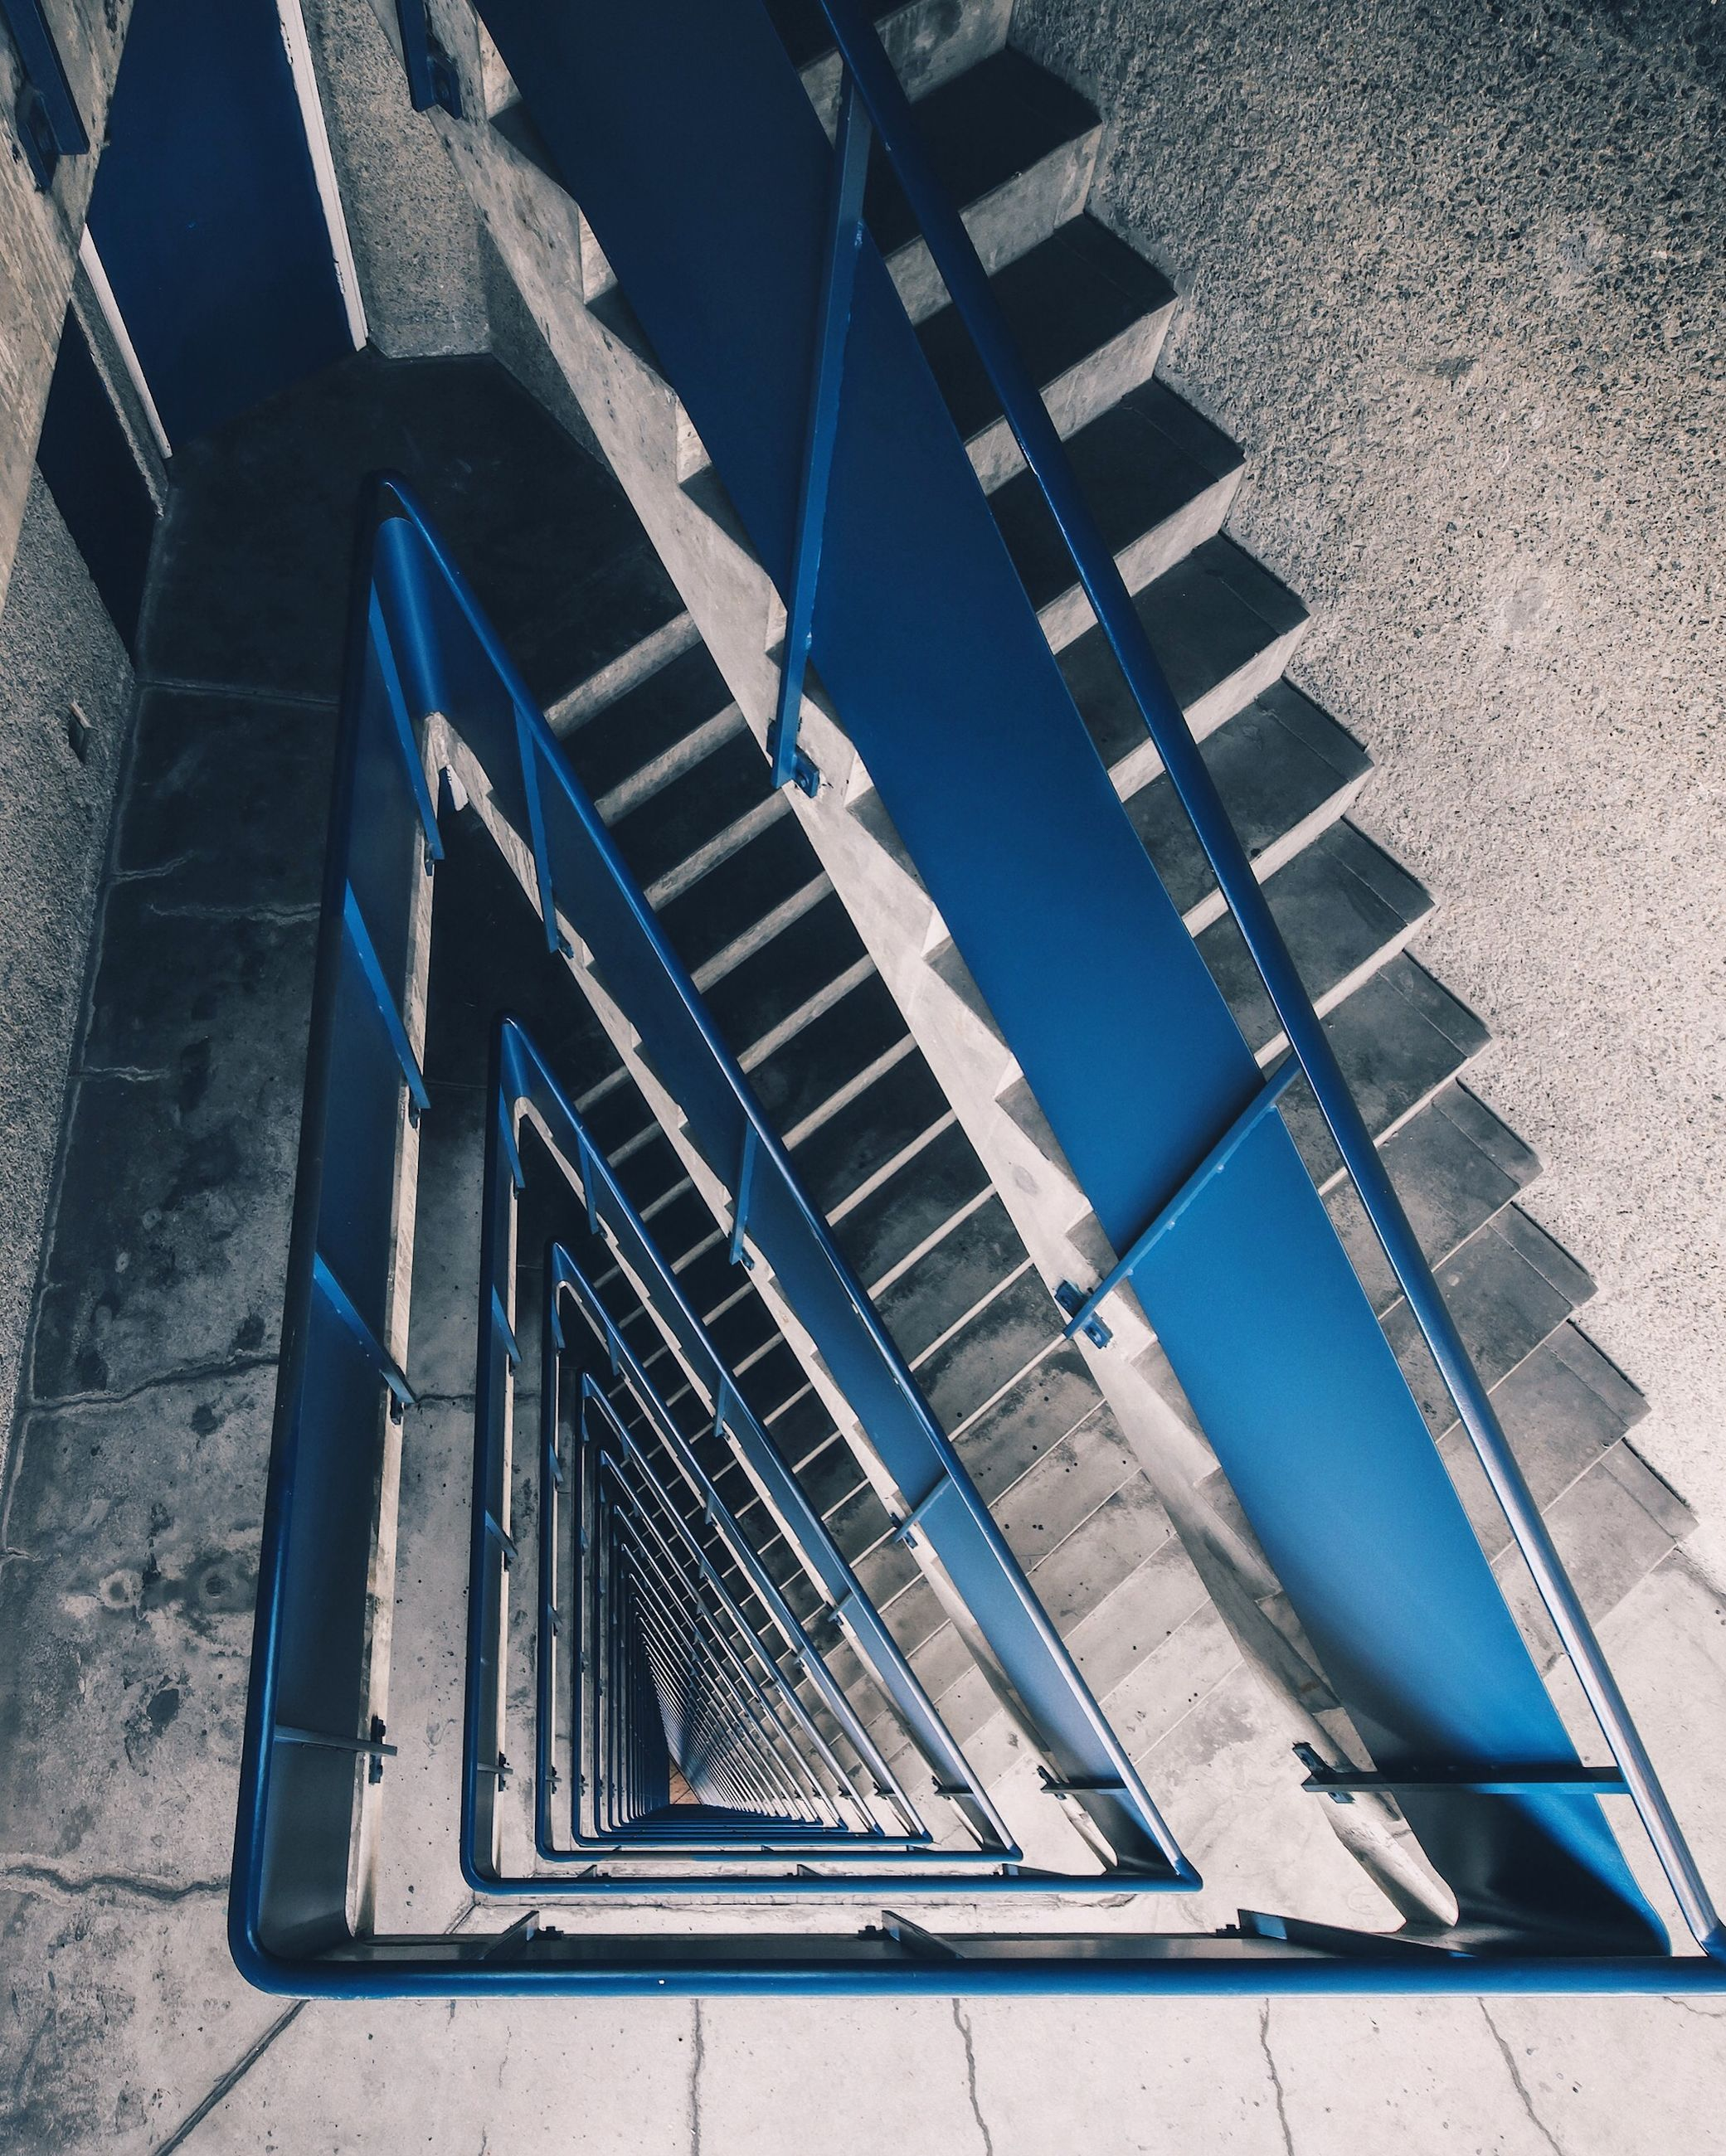 architecture, built structure, high angle view, staircase, no people, steps and staircases, day, building exterior, blue, railing, metal, building, pattern, outdoors, nature, spiral, directly above, sunlight, wall - building feature